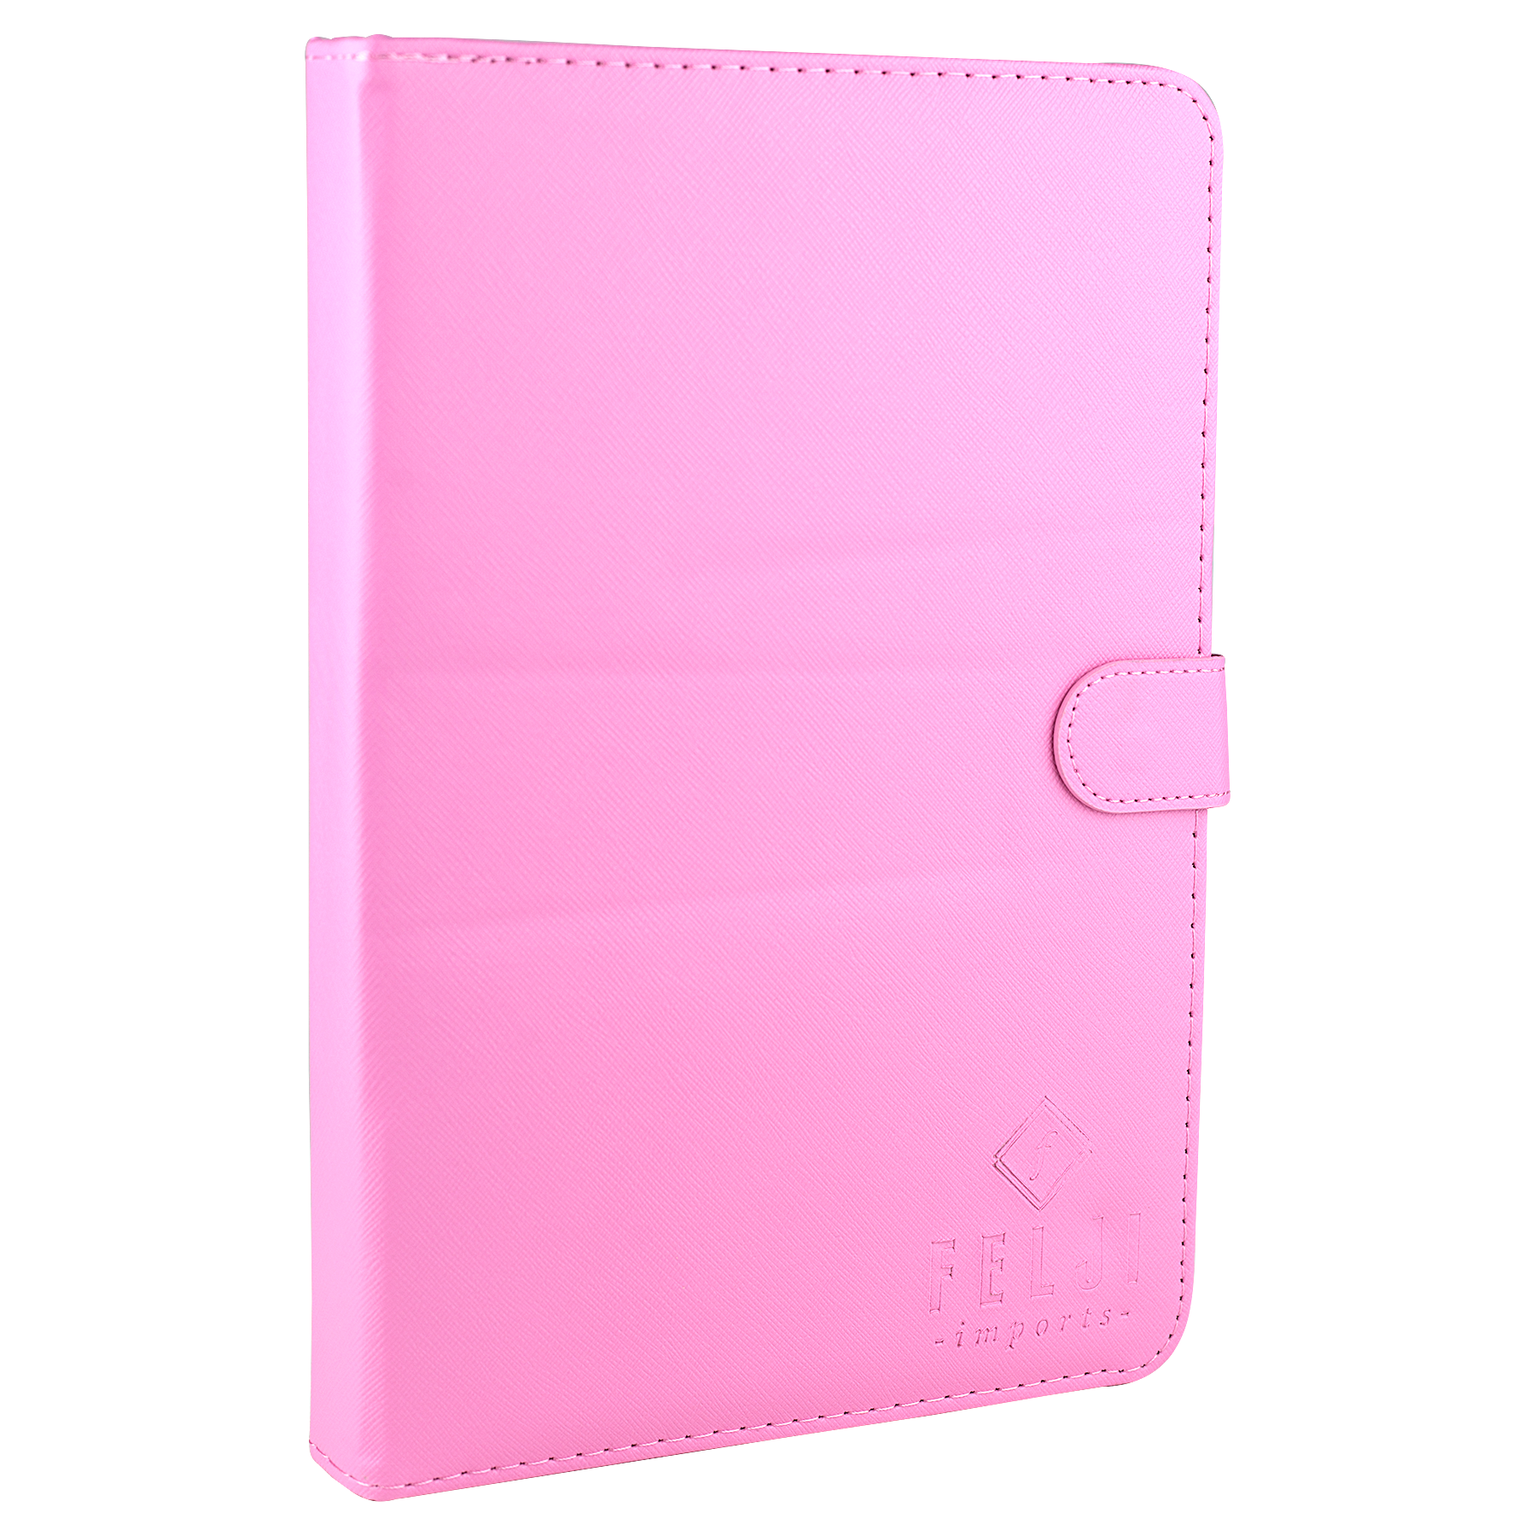 Felji Pink Stand Leather Case Cover for Android Tablet 10-inch Universal w/ USB Keyboard